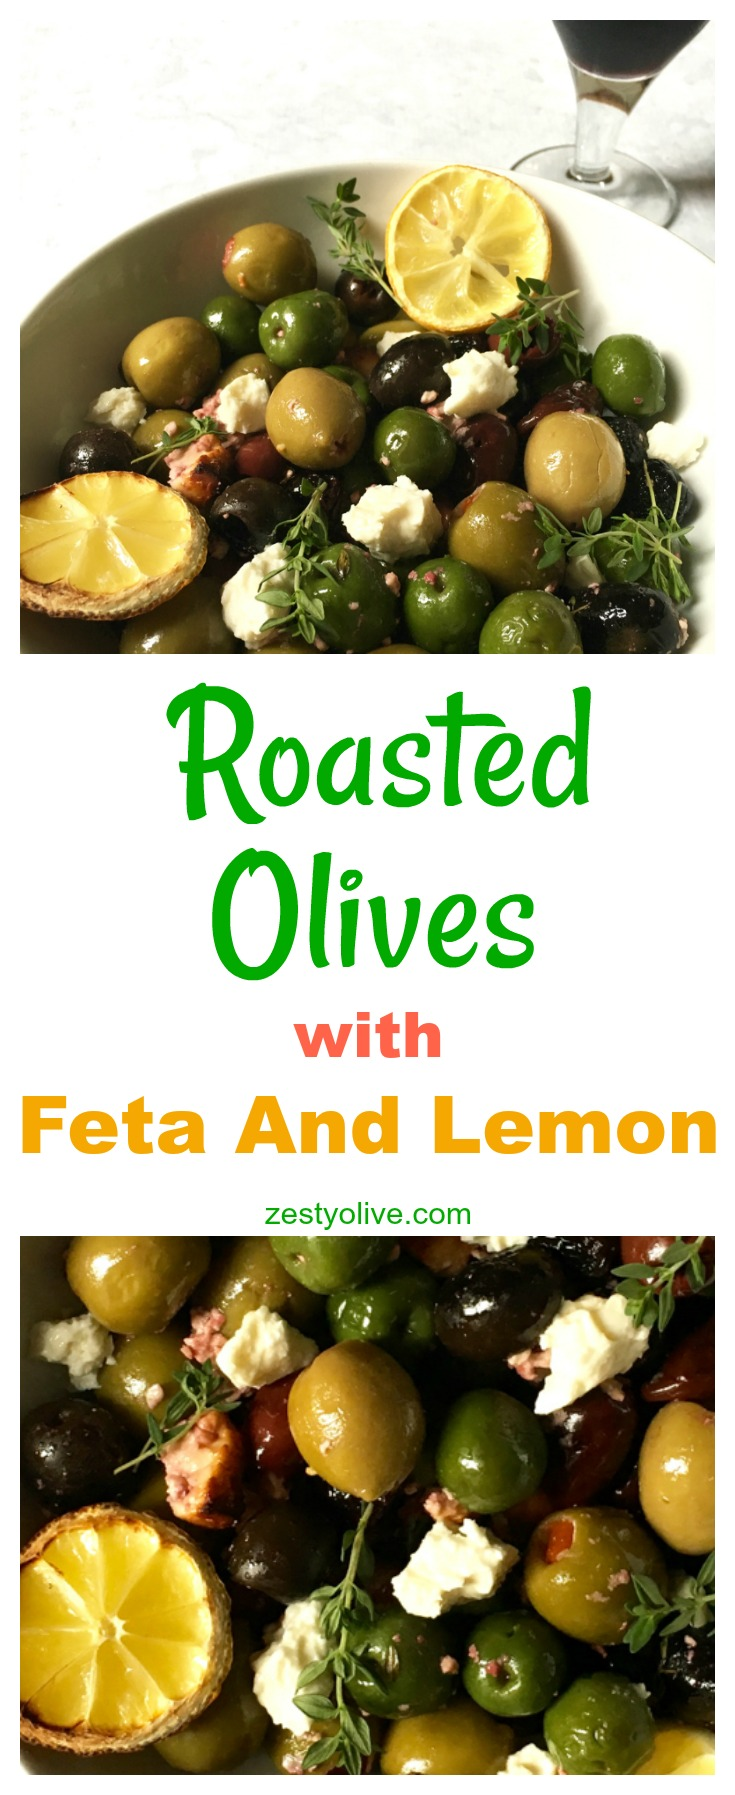 Roasted Olives With Feta And Lemon - the ultimate elegant and easy appetizer!